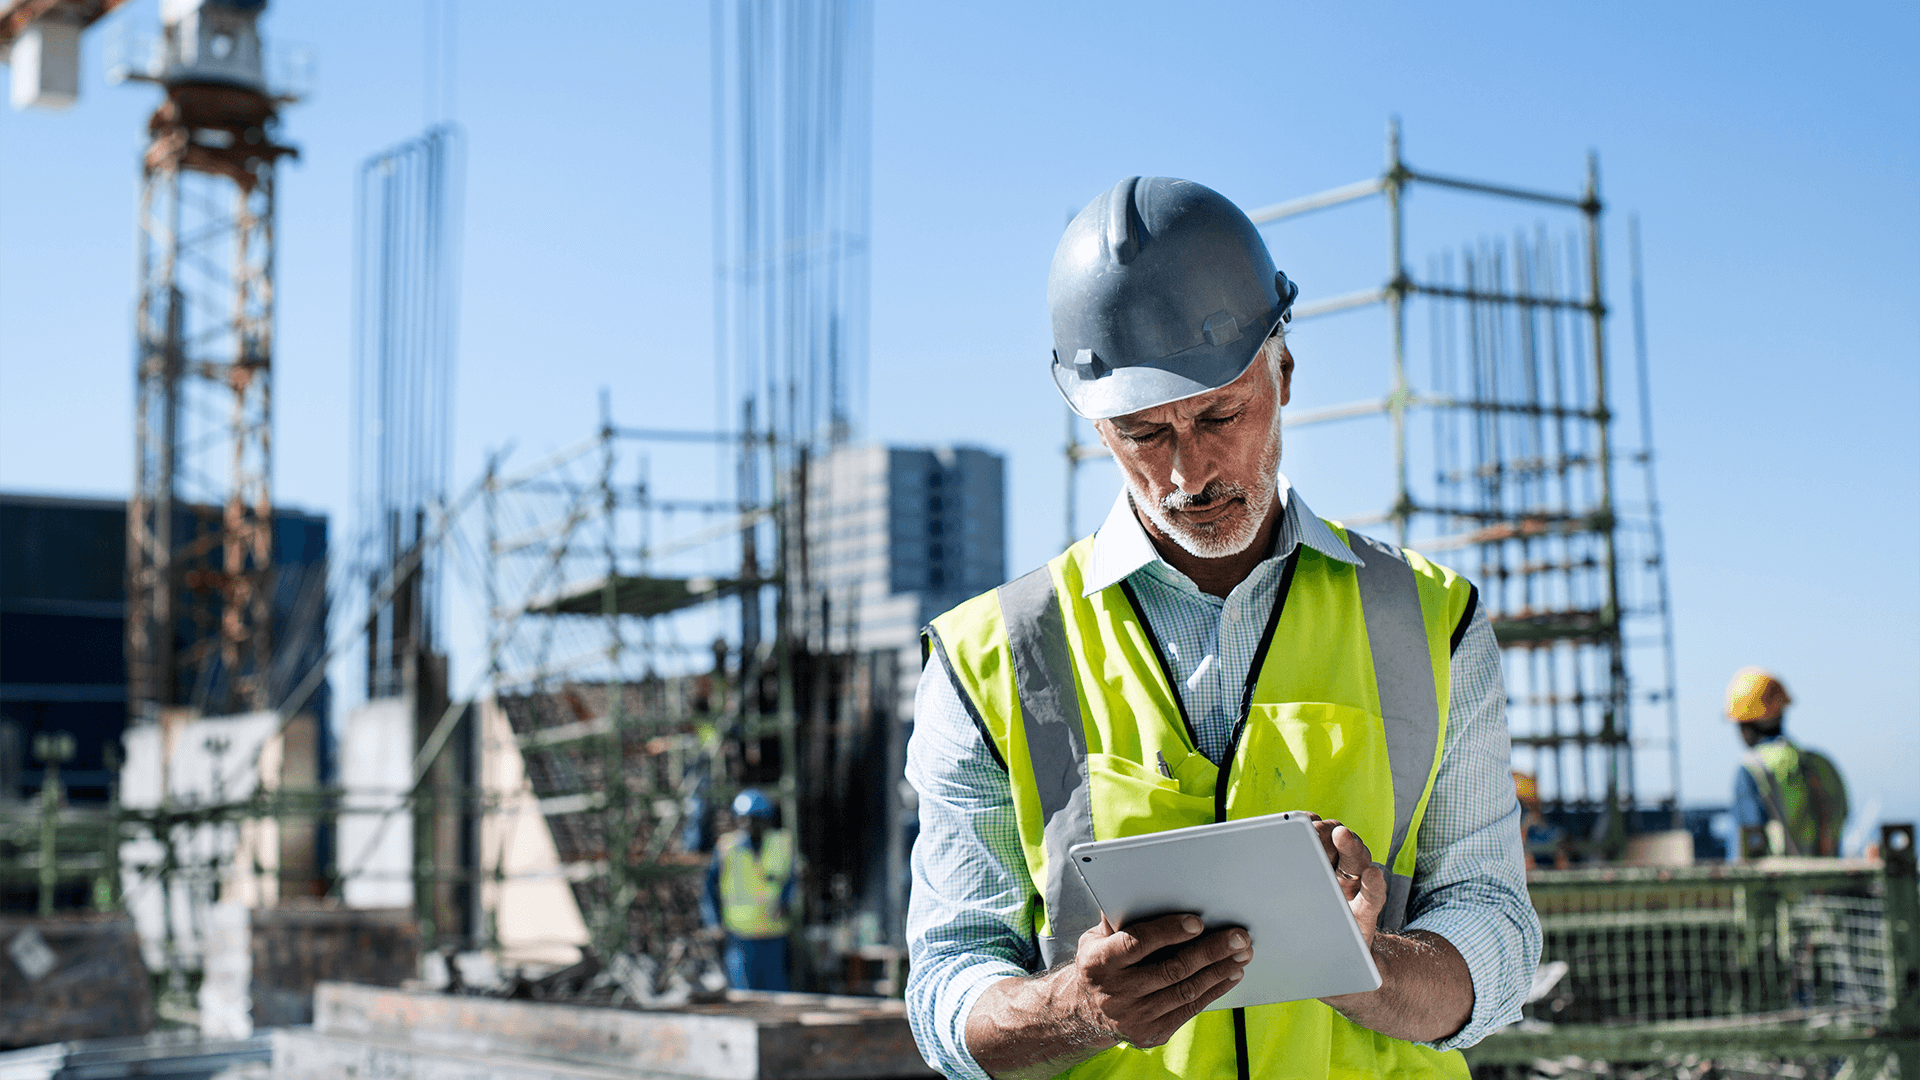 2020 to be tipping point for digitisation in the UK construction industry